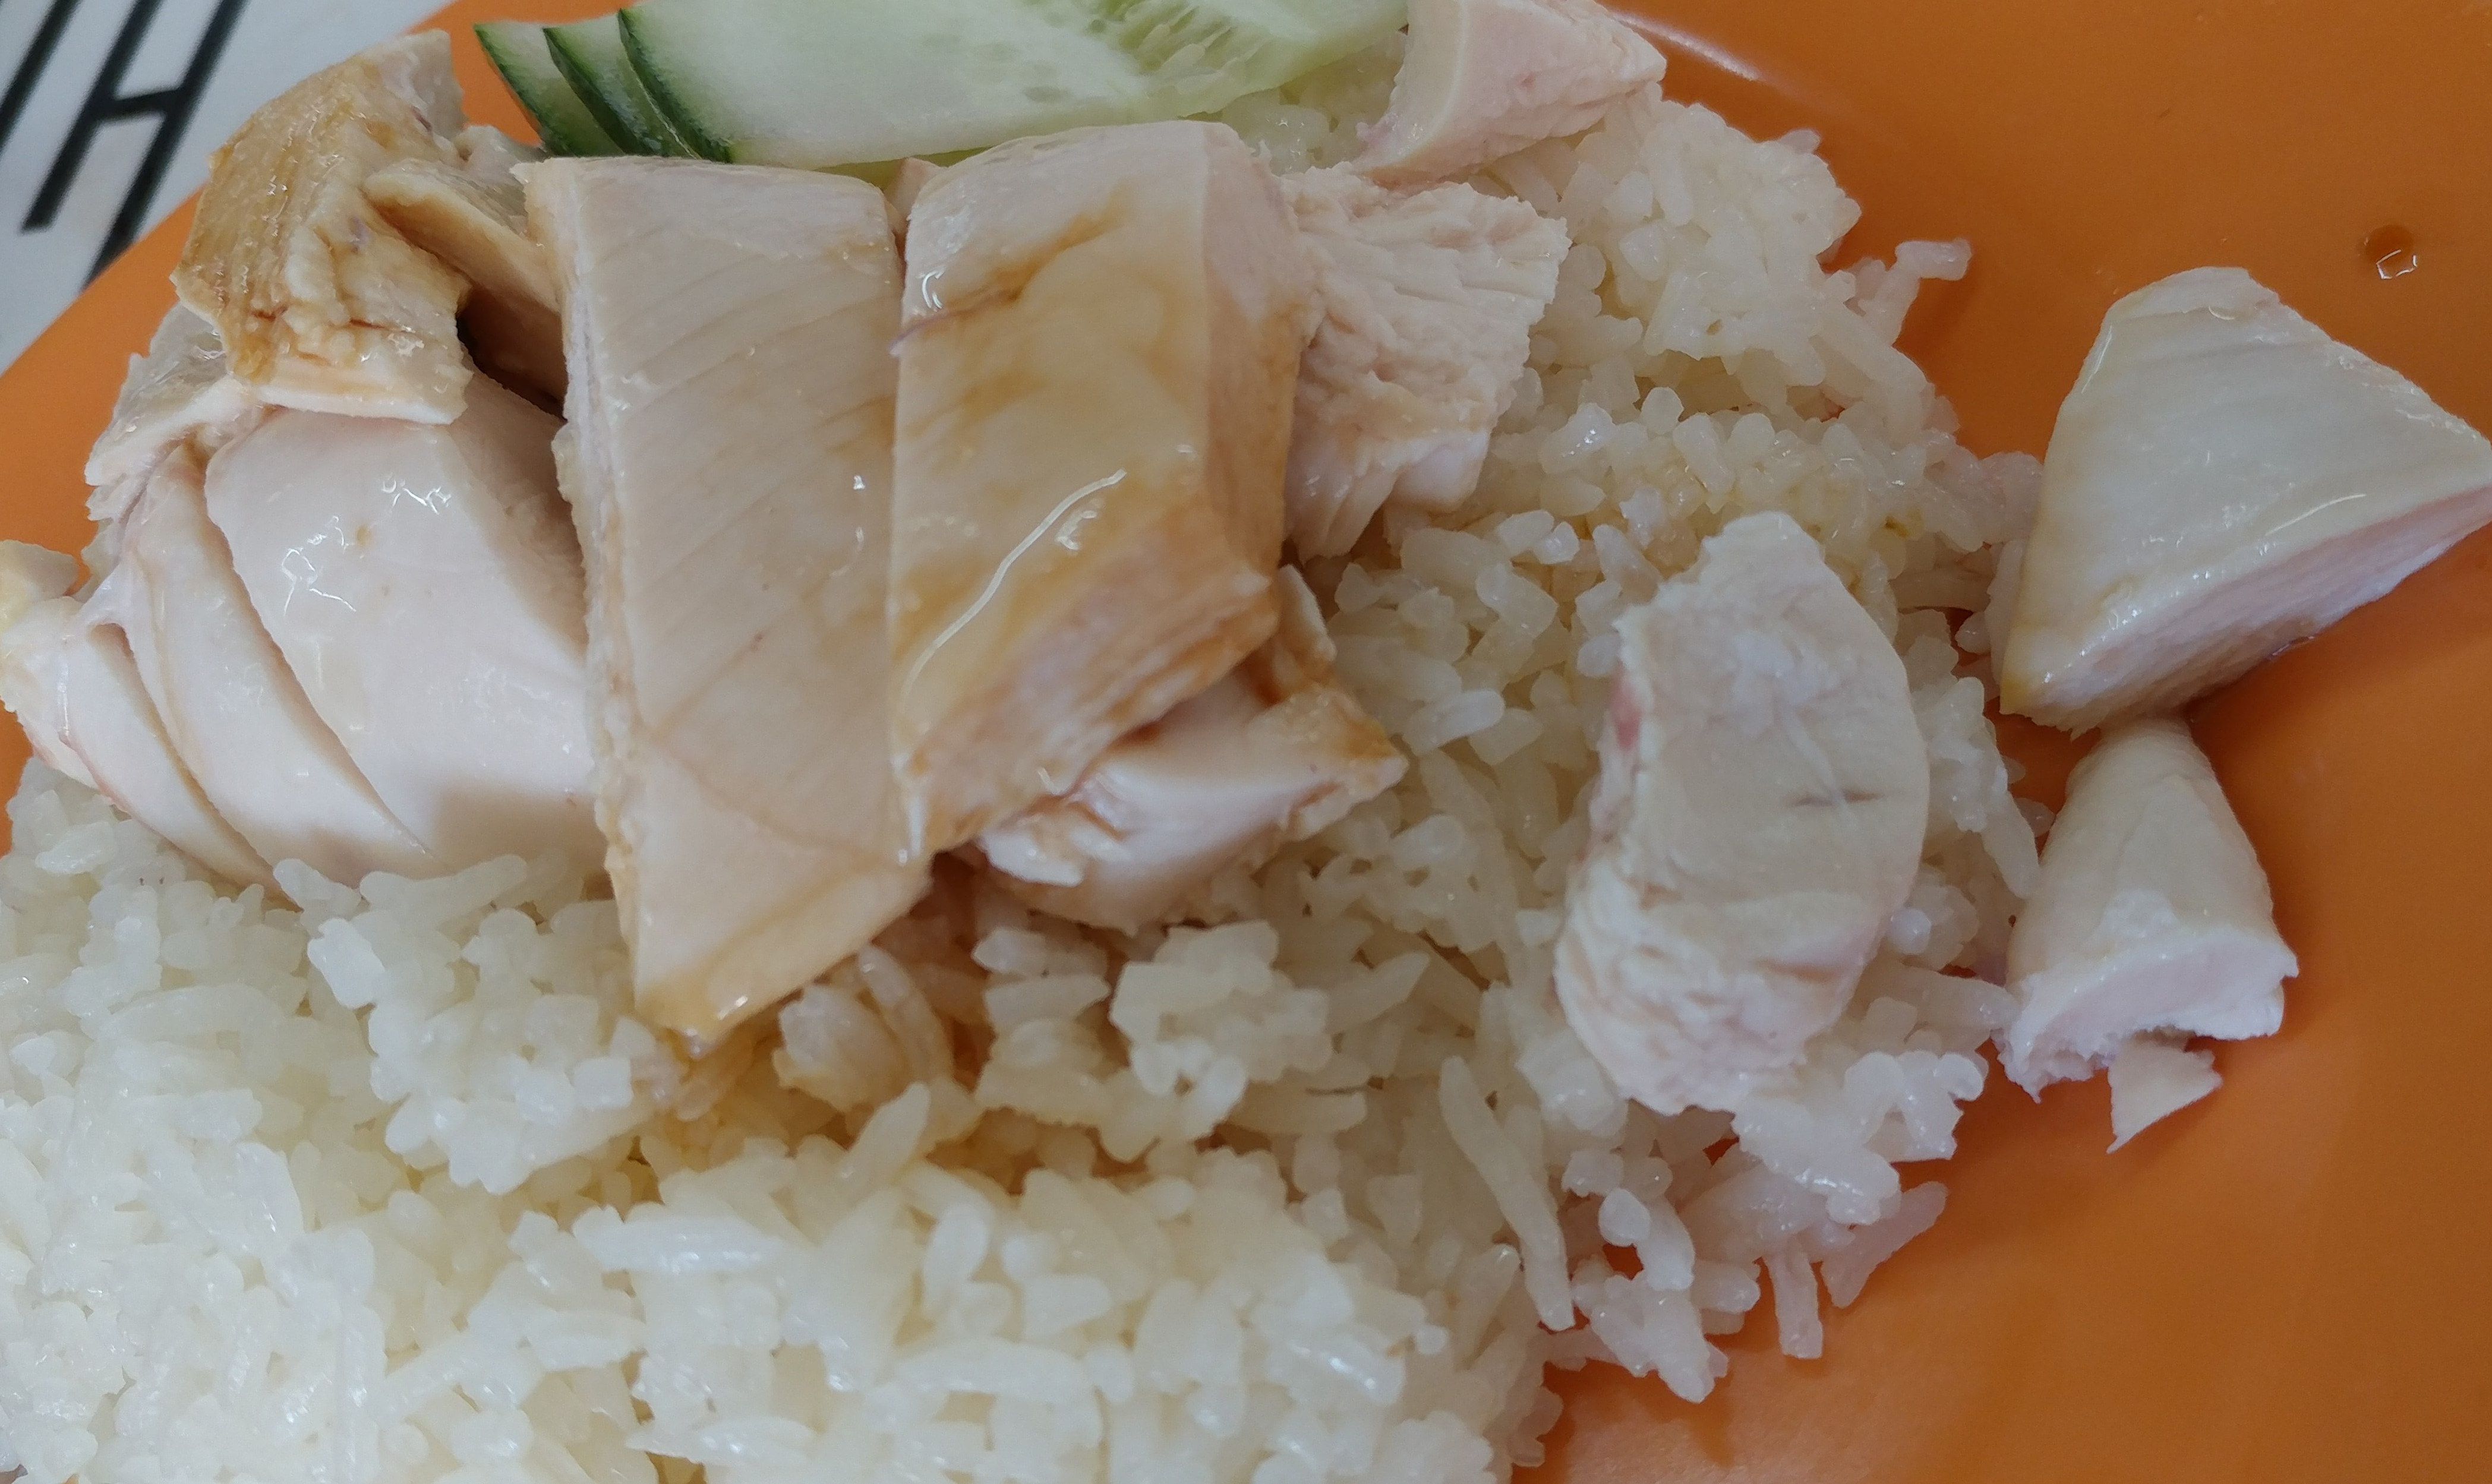 Best thing I ate this week: Cantonese-style chicken rice